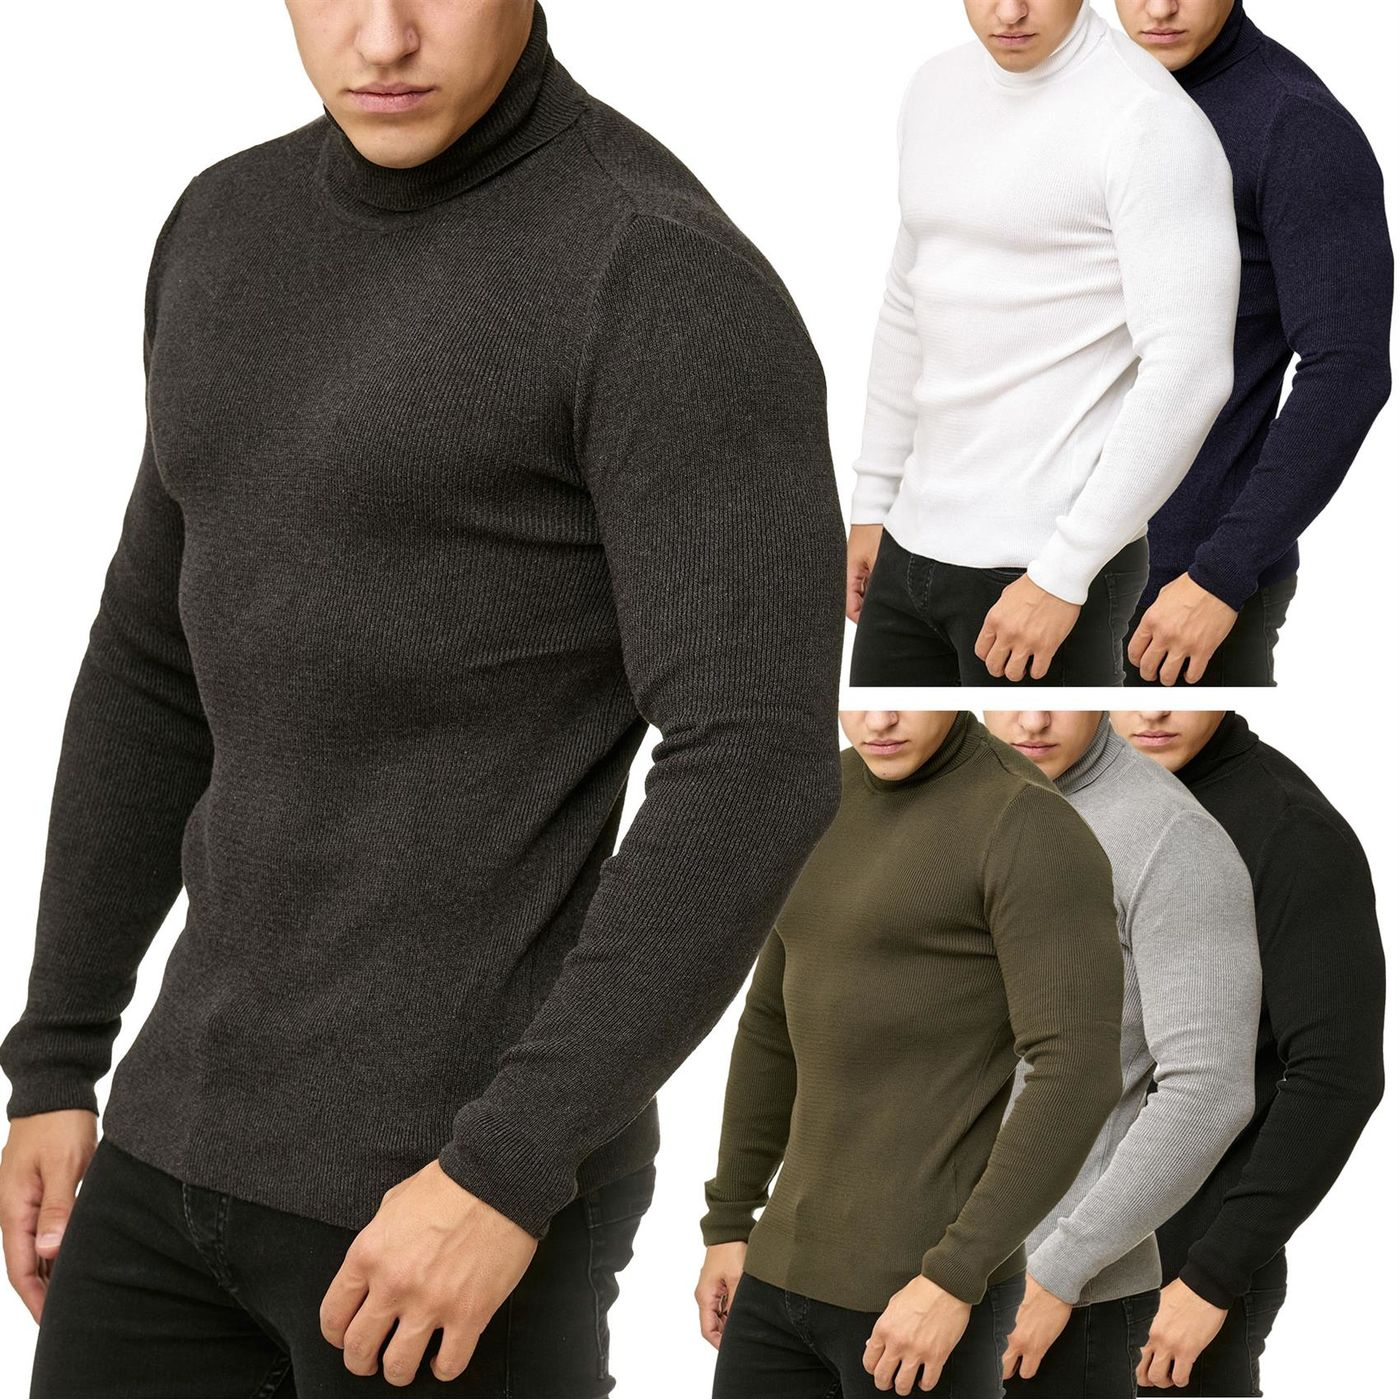 d205a3cdb Red Bridge Mens Knitted Pullover Turtleneck Sweater Soft Basic ...